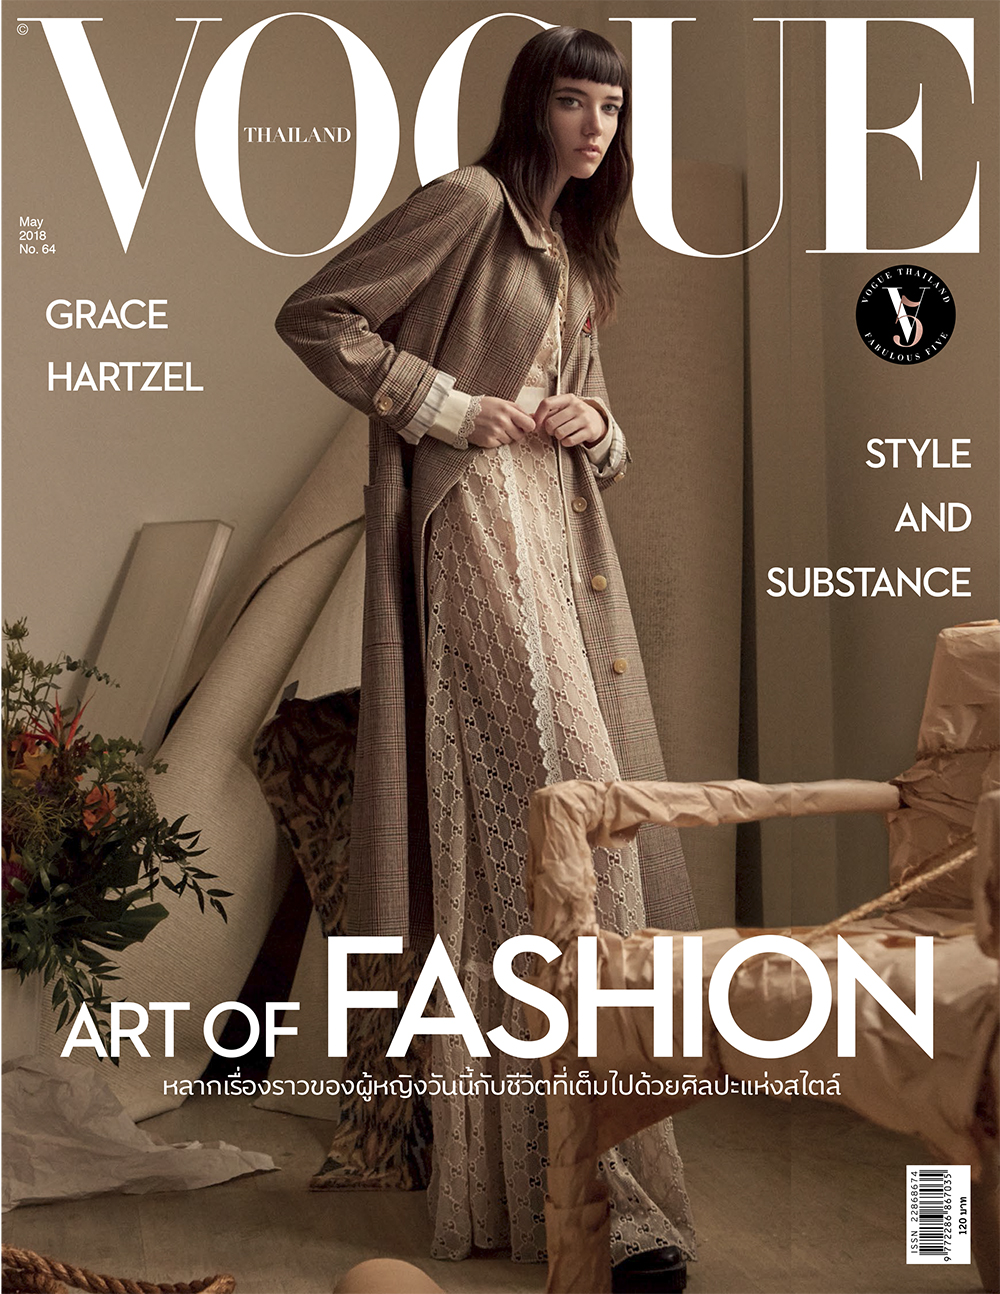 Vogue Thailand May '18 Cover Story